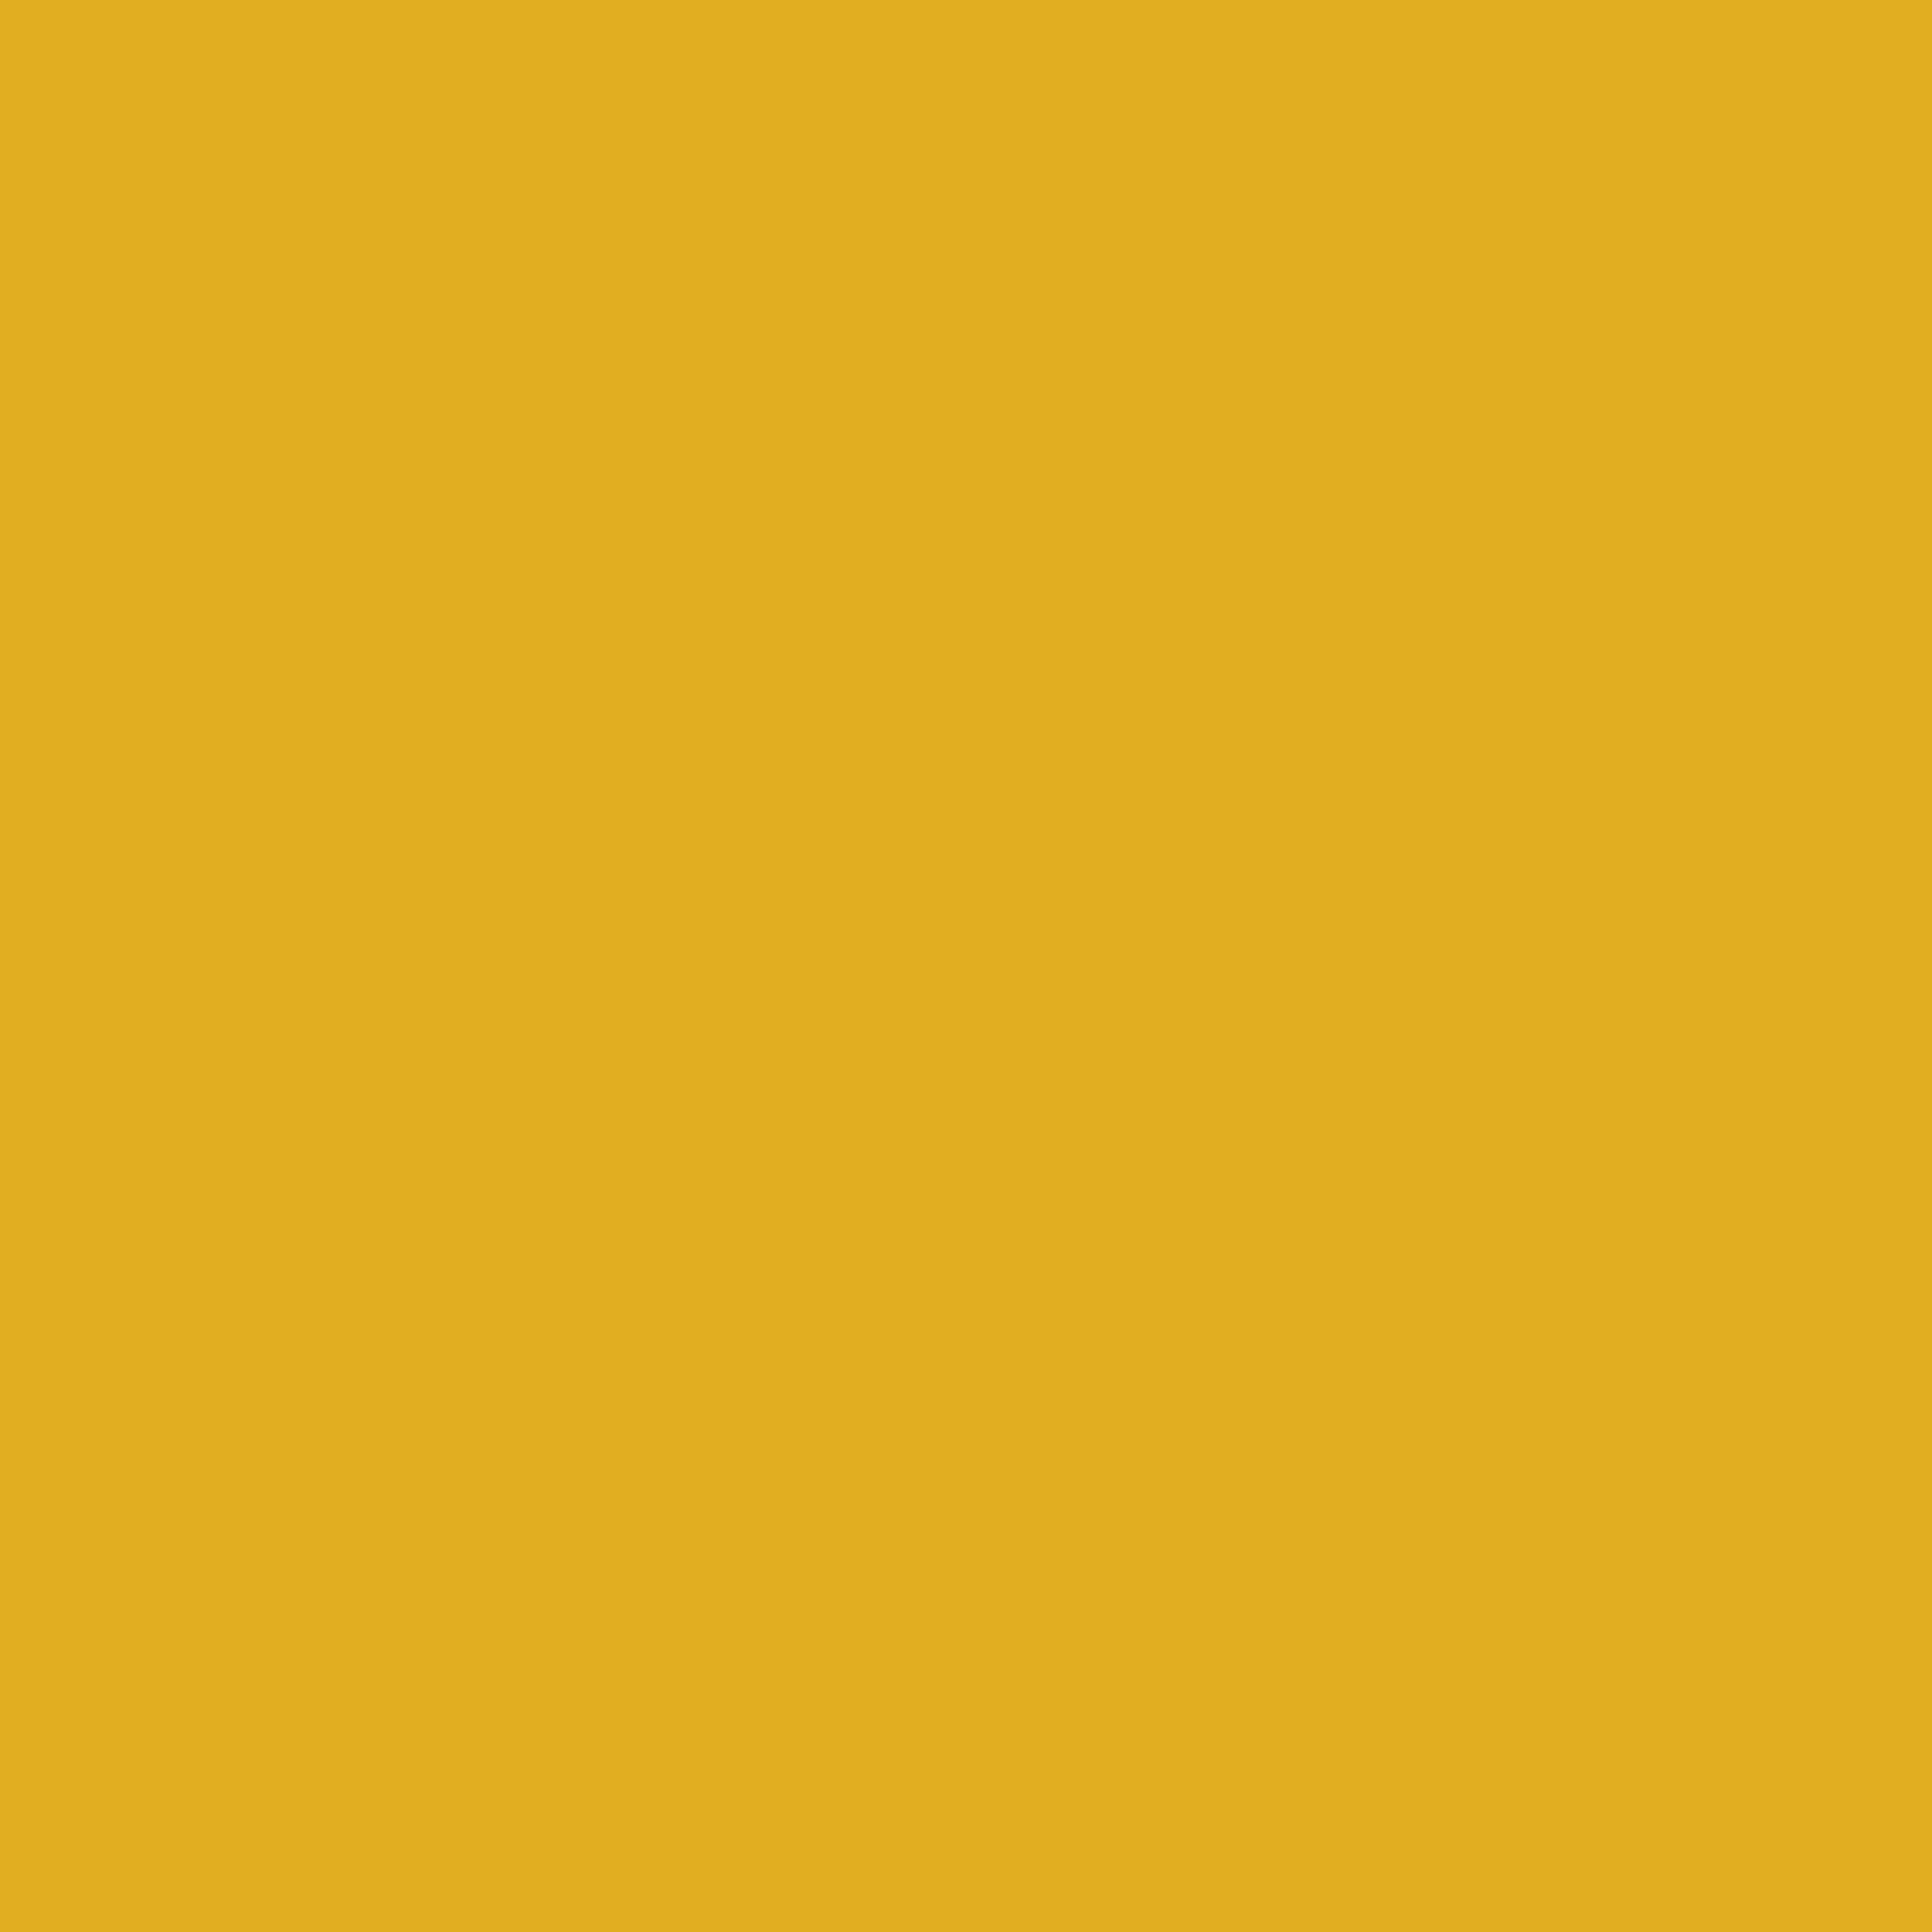 2732x2732 Urobilin Solid Color Background